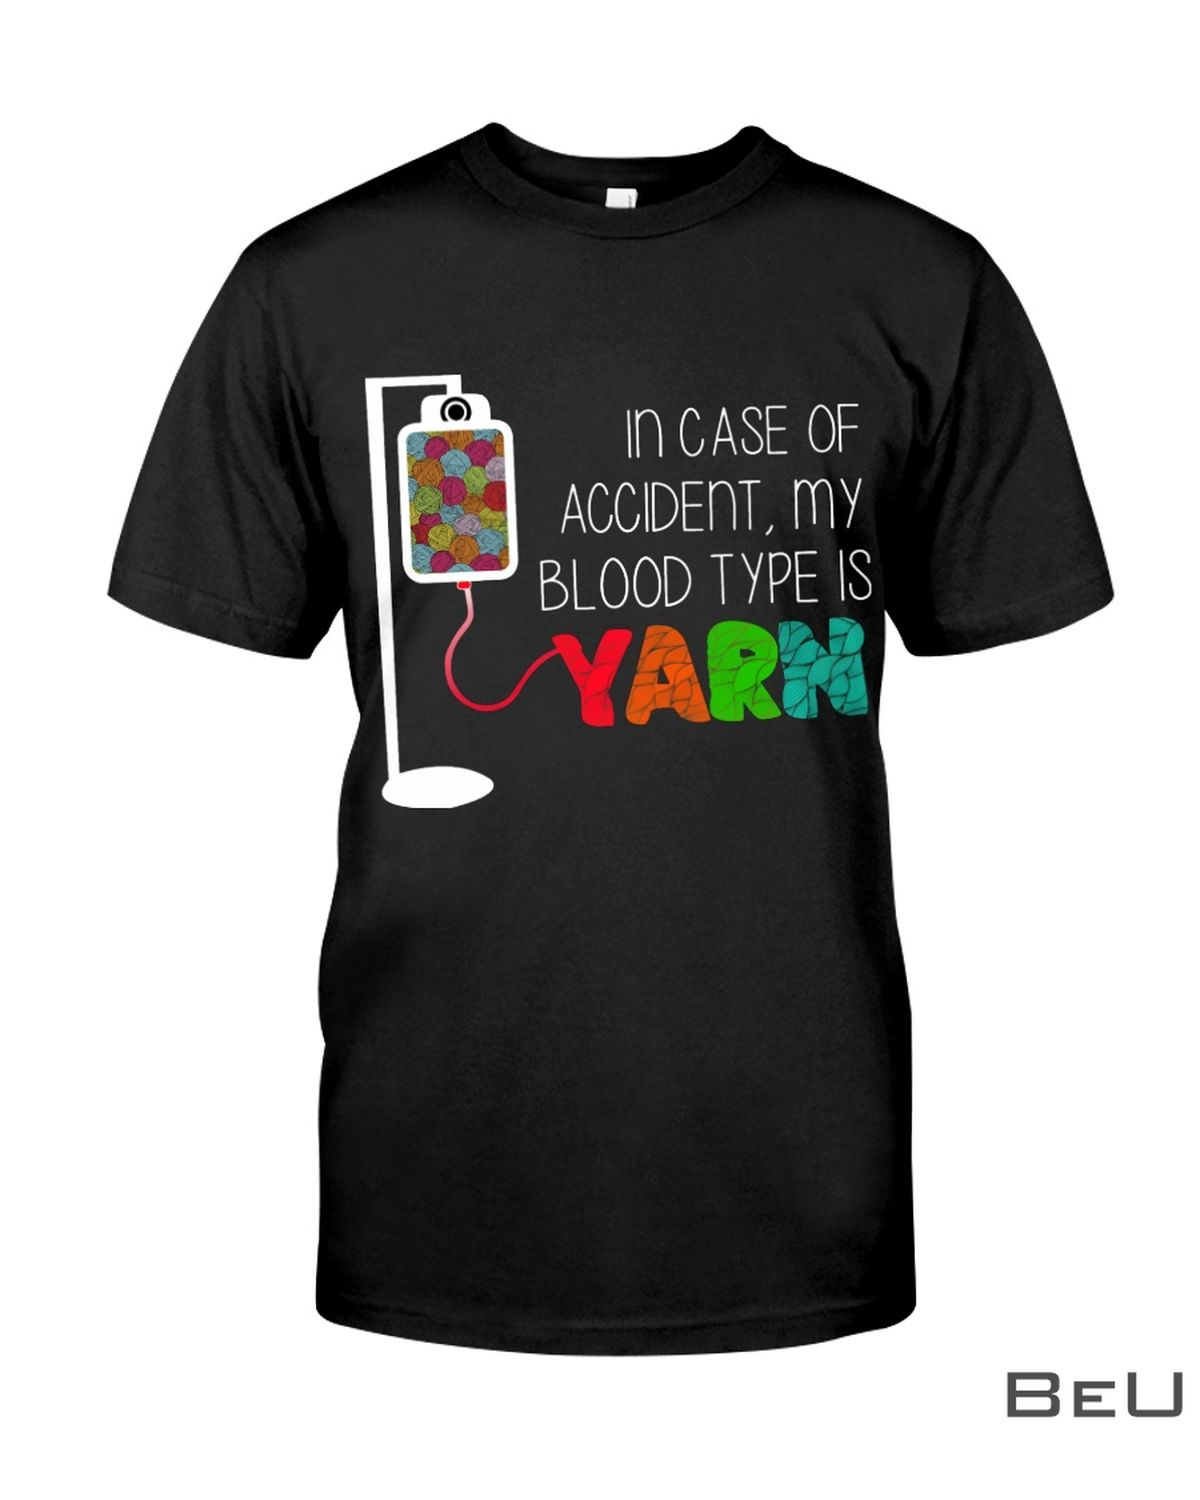 In Case Of Accident My Blood Type Is Yarn Shirt, hoodie, tank top